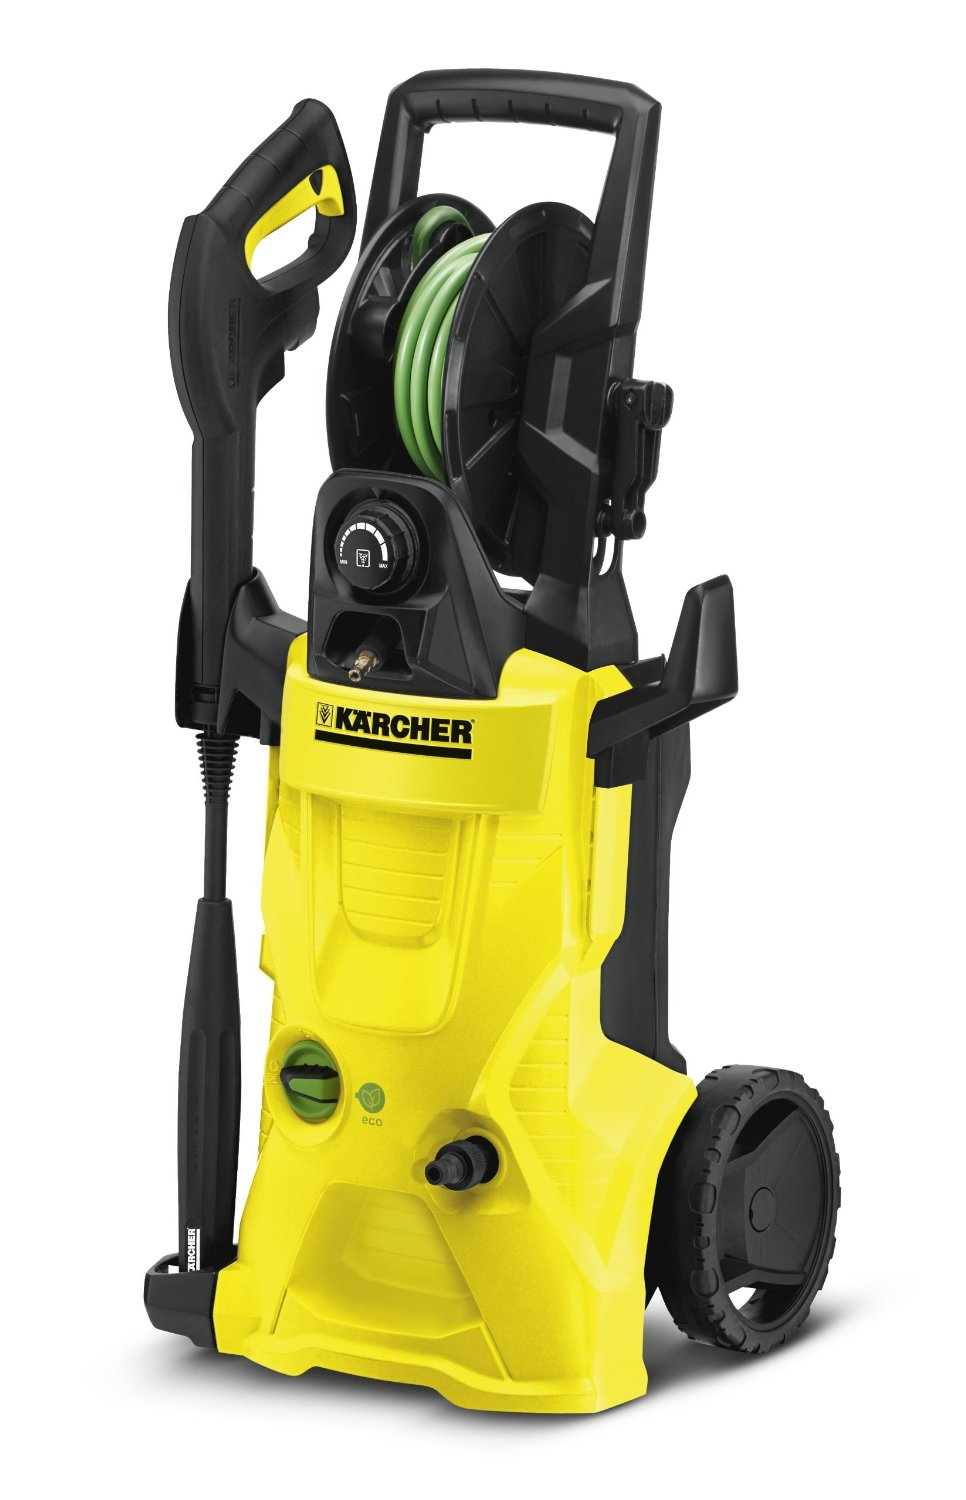 Karcher K4 Review Premium Eco Home Pressure Washer